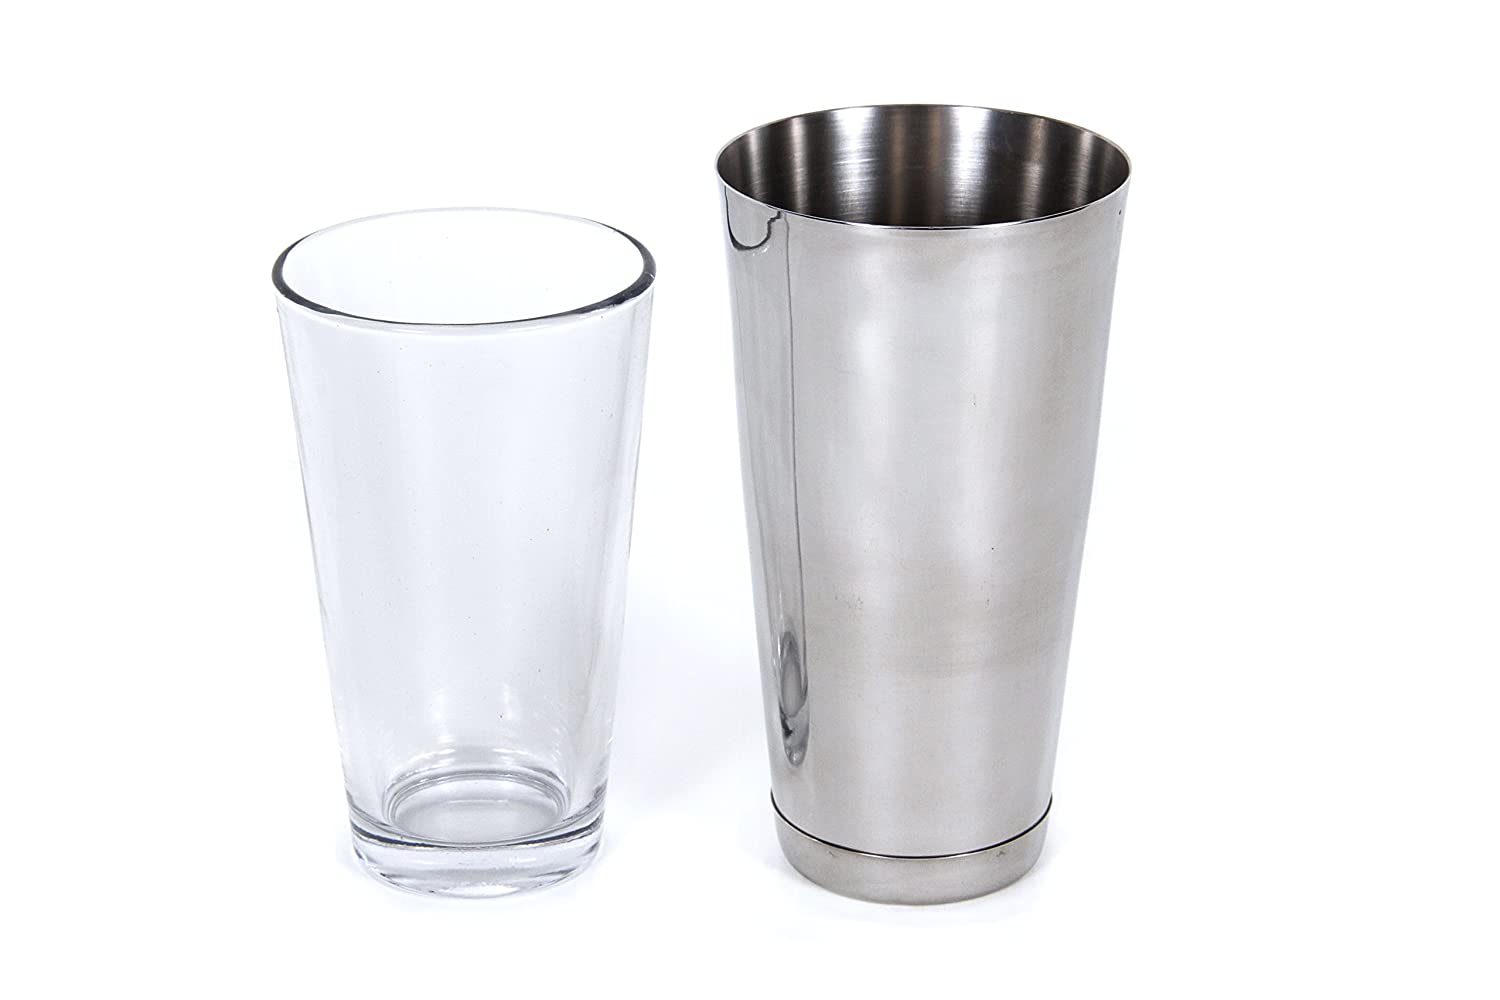 CucinaPrime Cocktail Shaker Set 16 Ounce Glass and 30 Ounce Stainless Steel Cup 2 Piece Set